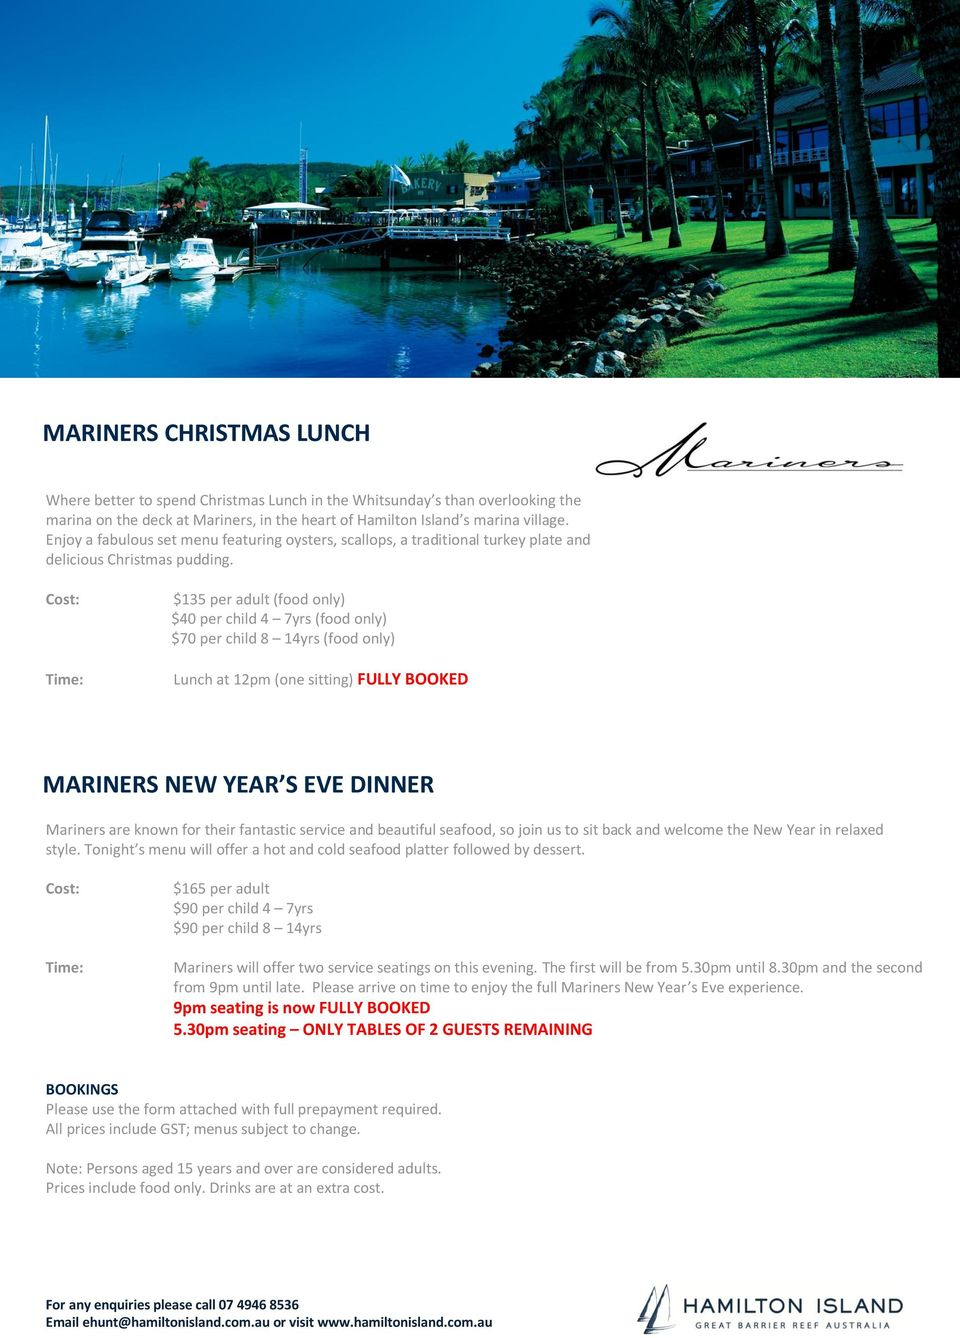 $135 per adult (food only) $40 per child 4 7yrs (food only) $70 per child 8 14yrs (food only) Lunch at 12pm (one sitting) FULLY BOOKED MARINERS NEW YEAR S EVE DINNER Mariners are known for their